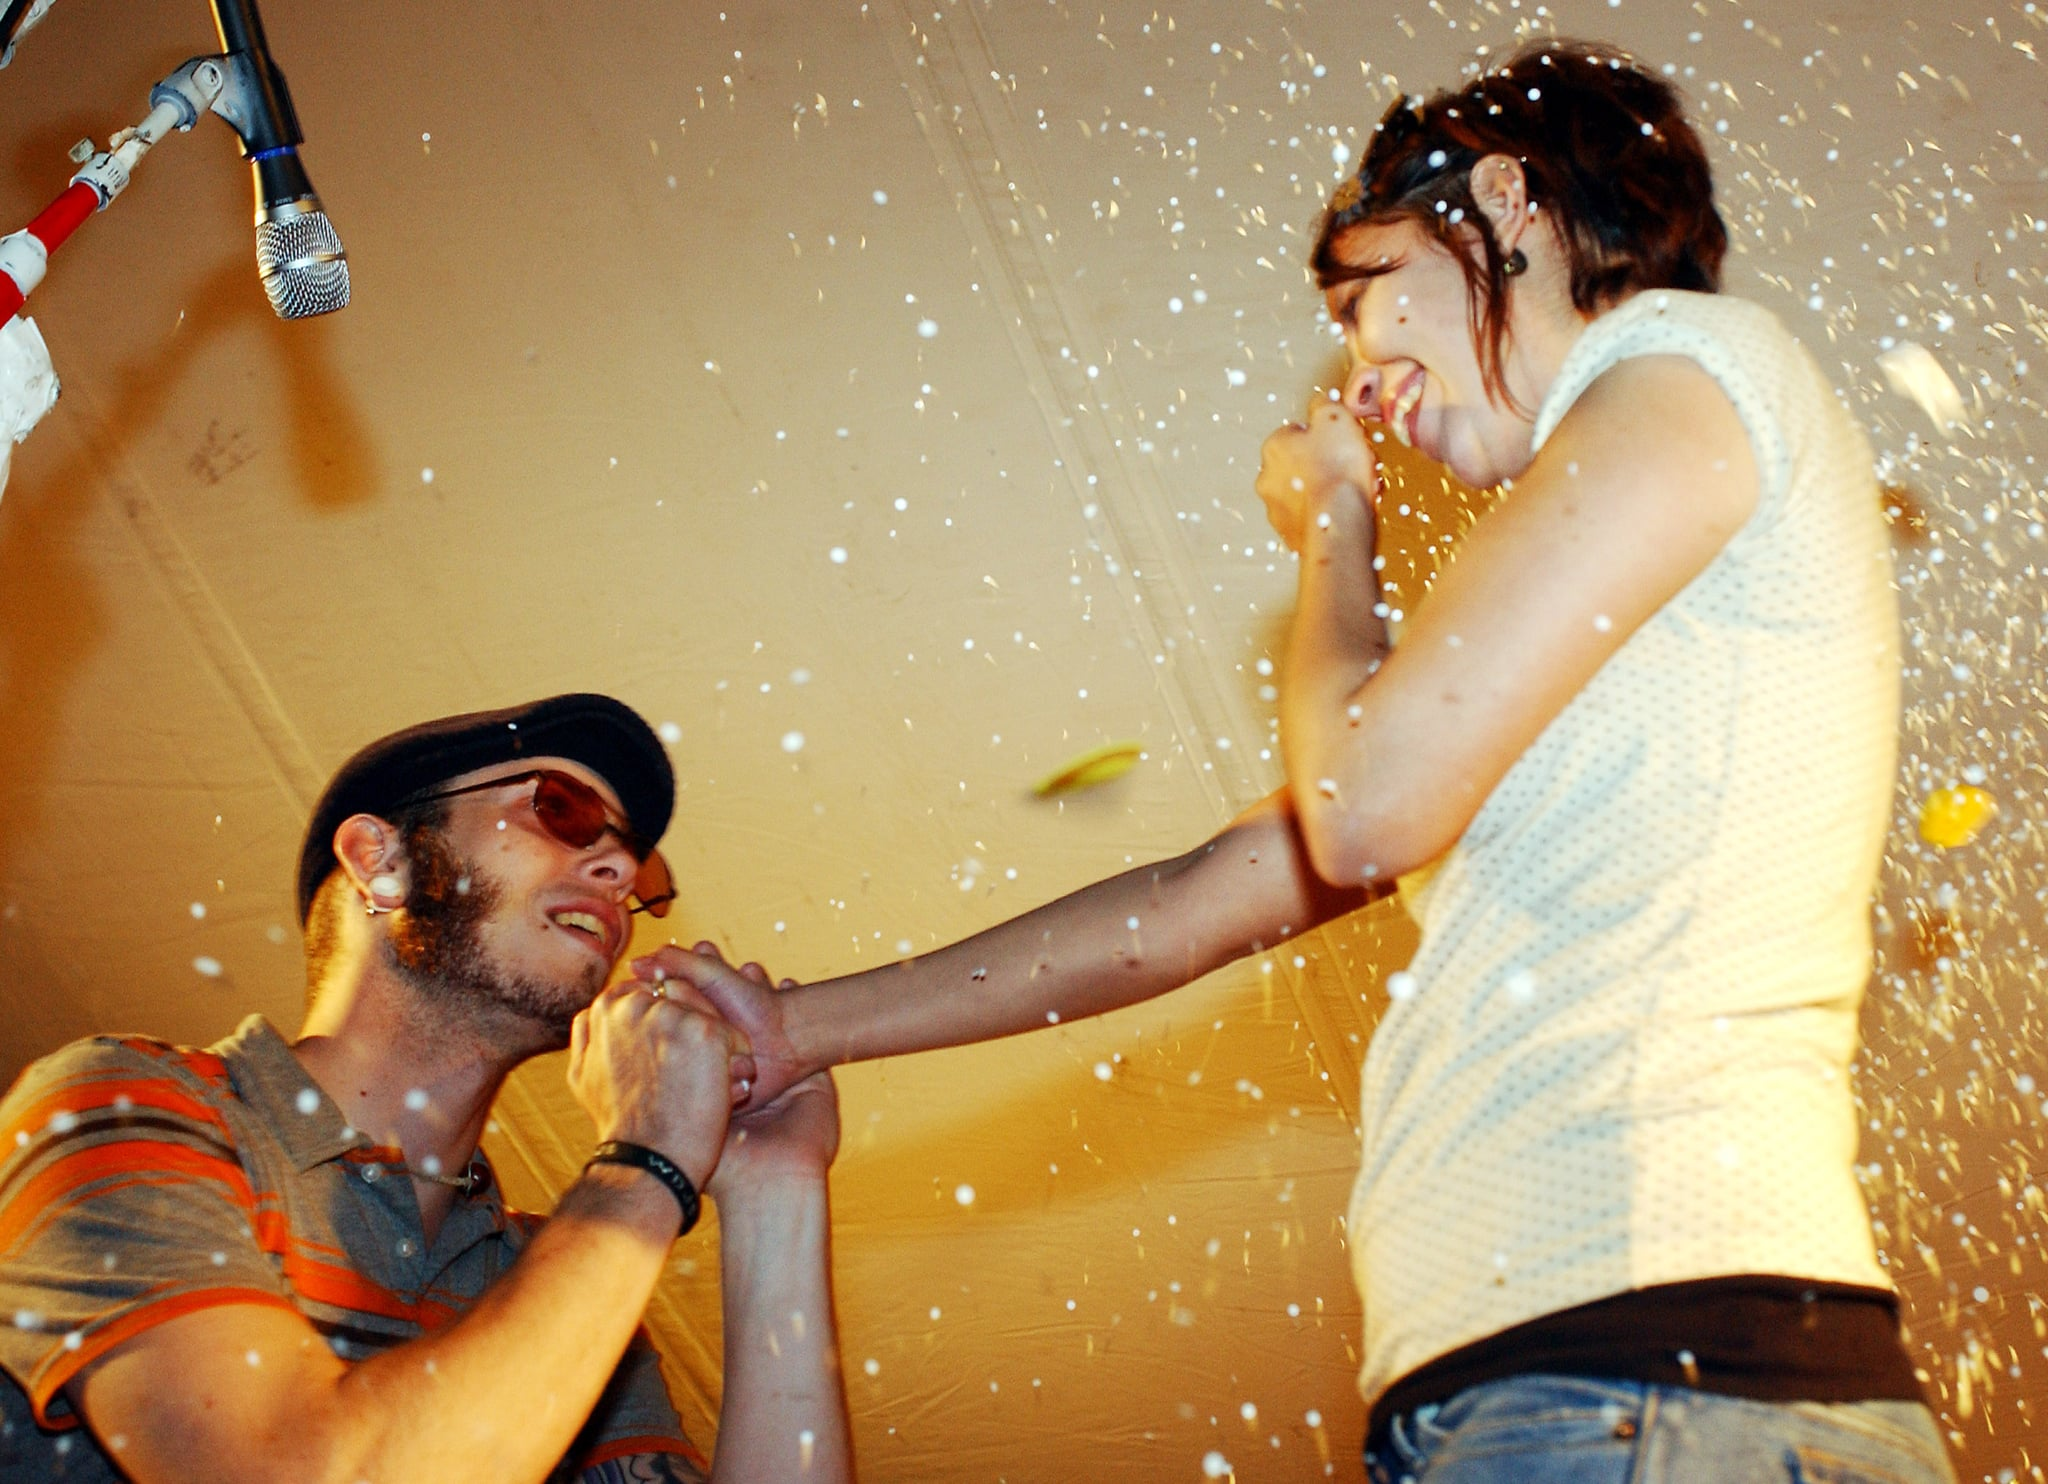 A festivalgoer proposed to his girlfriend at the SXSW Film and Music Festival.